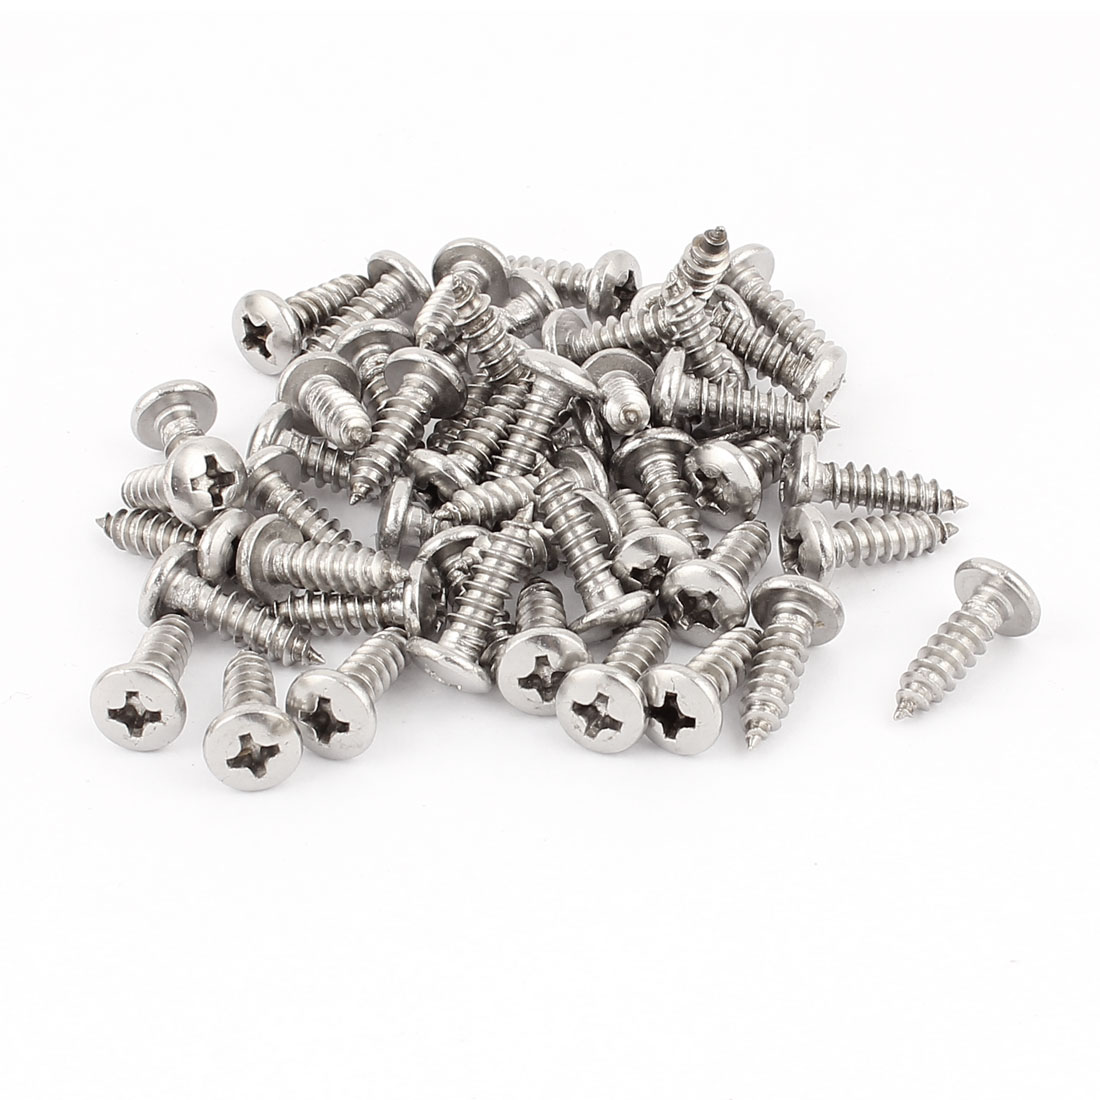 4.8mm x 18mm Phillips Cross Drive Pan Head Self Tapping Screw Fasteners Silver Tone 50 Pcs